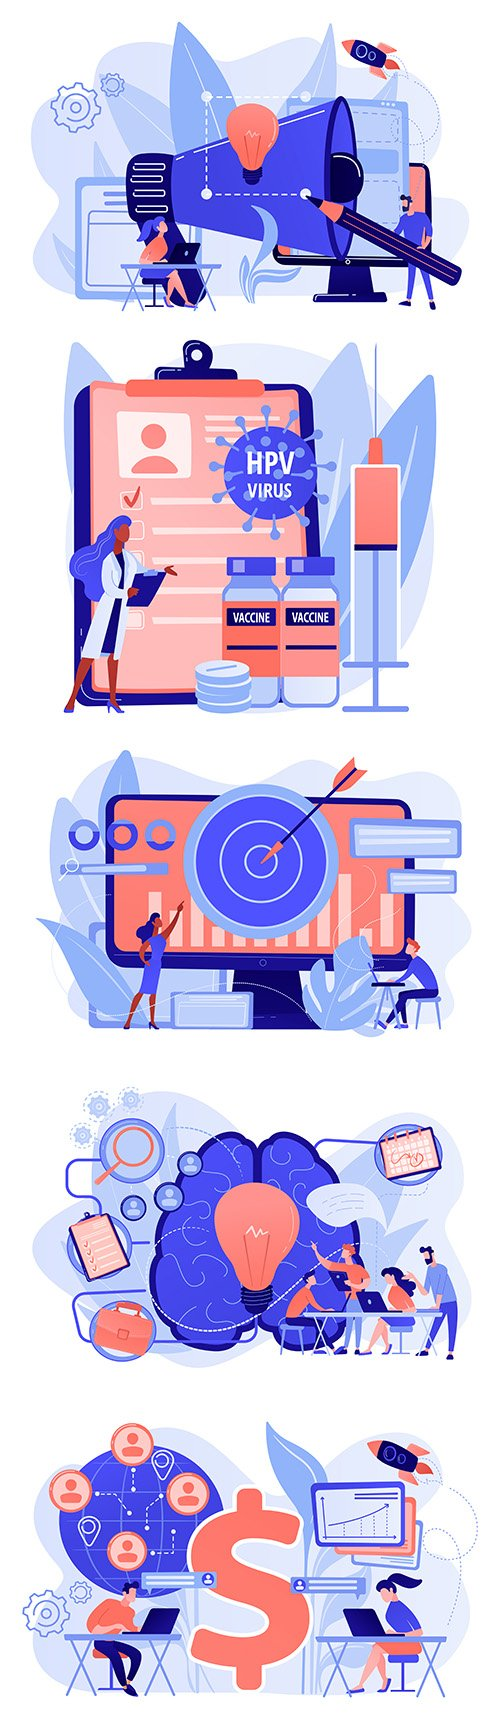 Business team analysis and planning flat design illustration